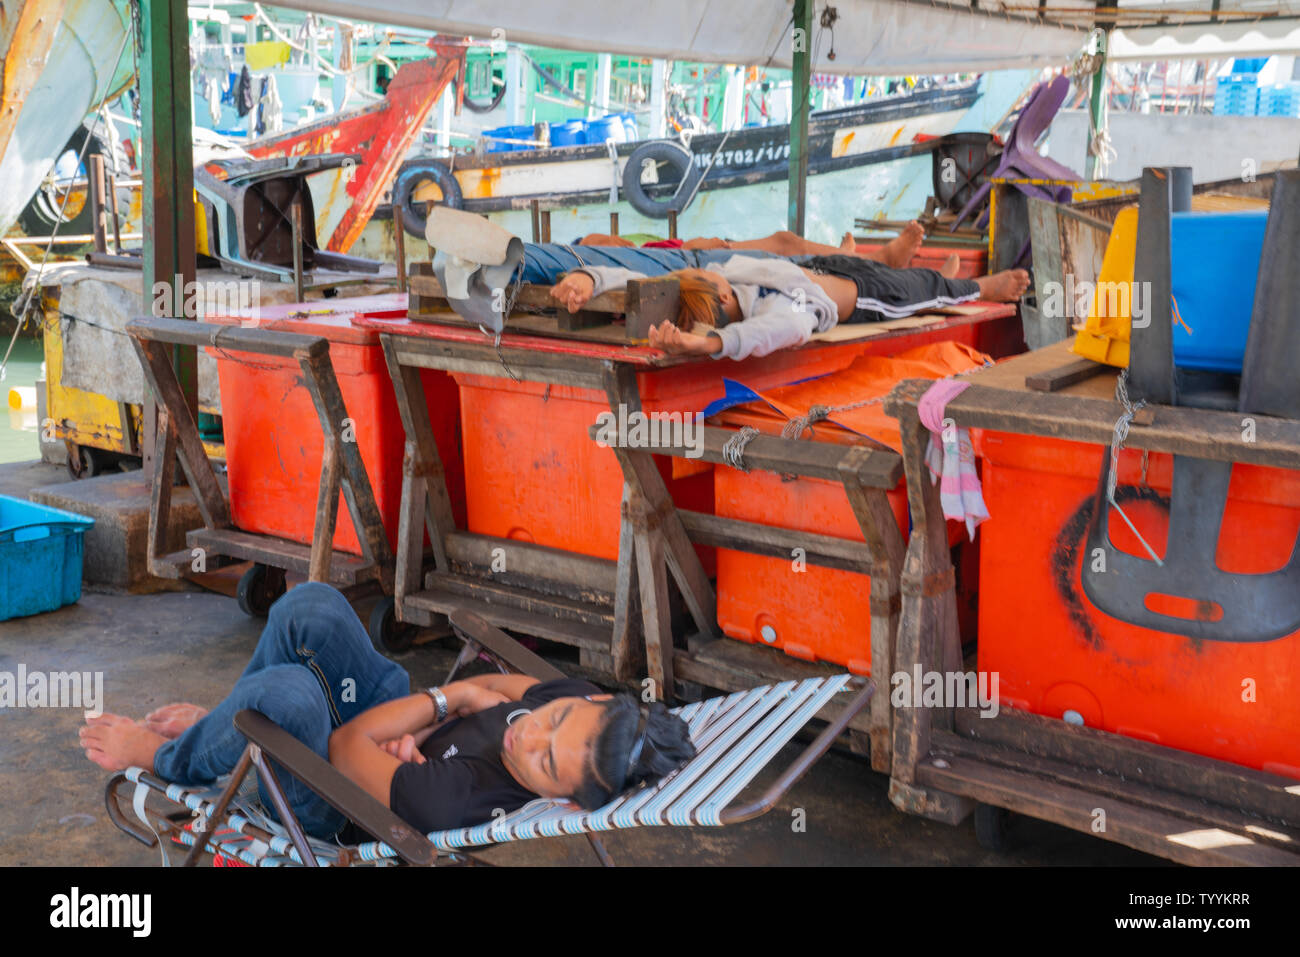 KOTA KINABALU BORNEO - MAY 31 2019; Fishermen asleep on docks near city fishing fleet moored at docks ready to head out again to catch - Stock Image